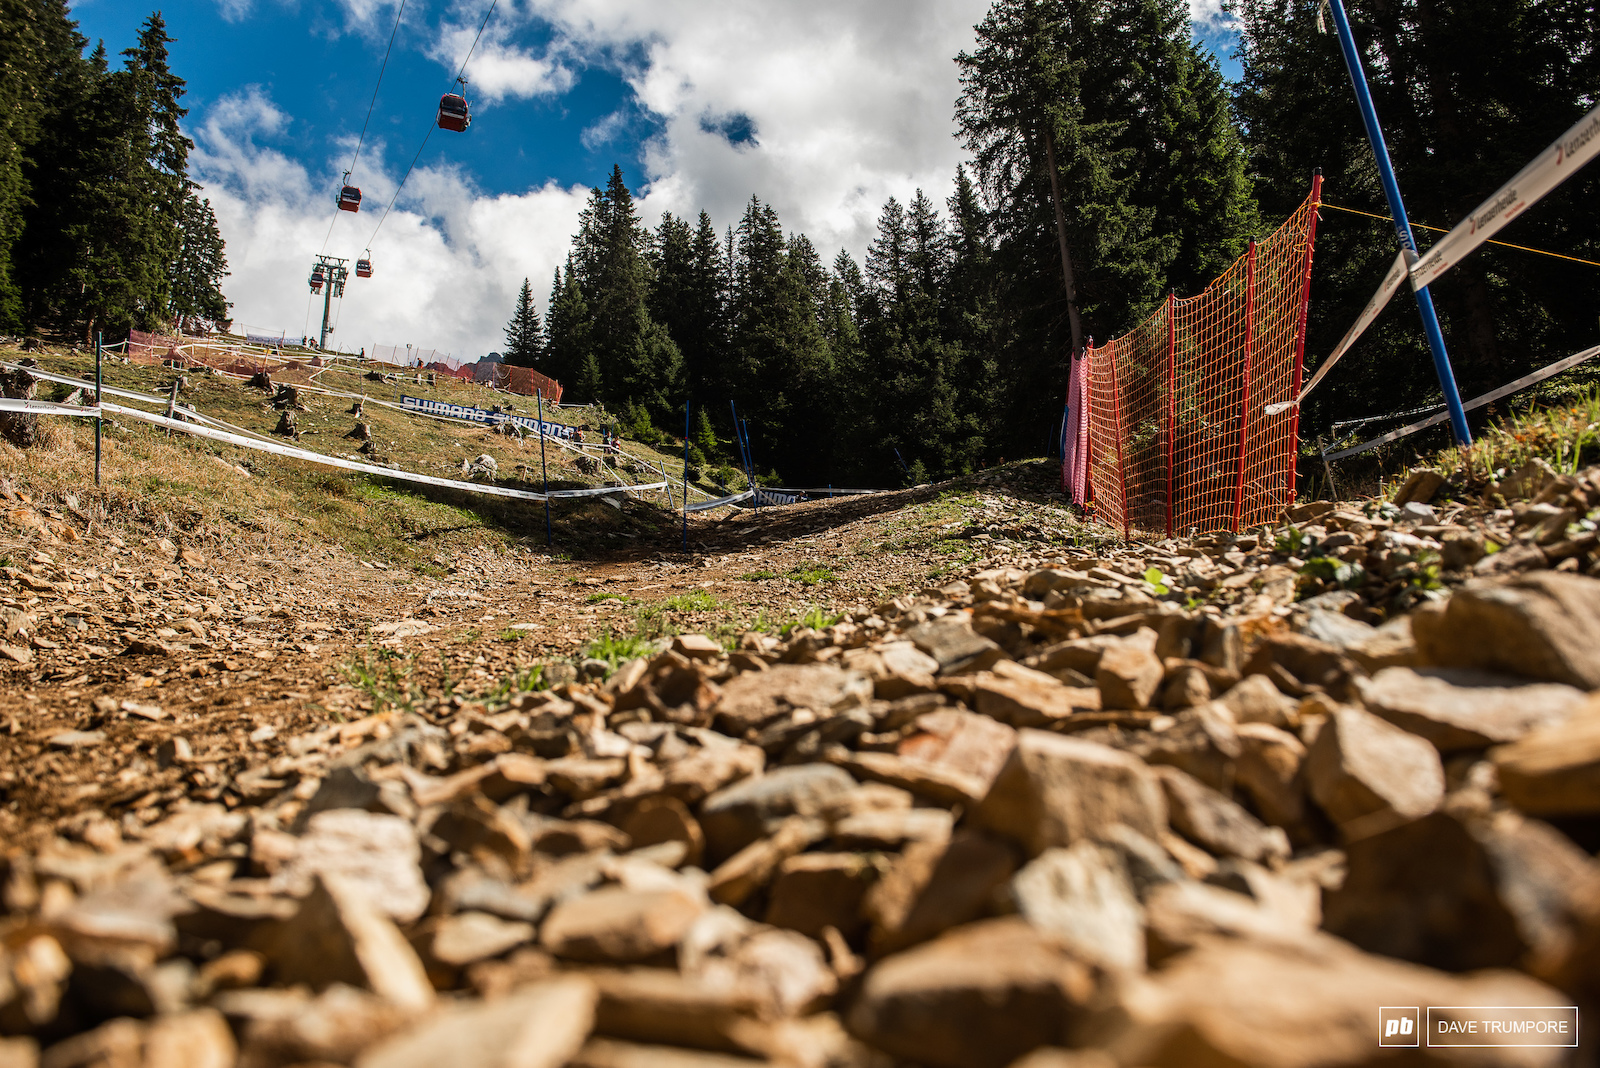 The fastest part of the track has seen it s fair share of gnarly crashes over the years.